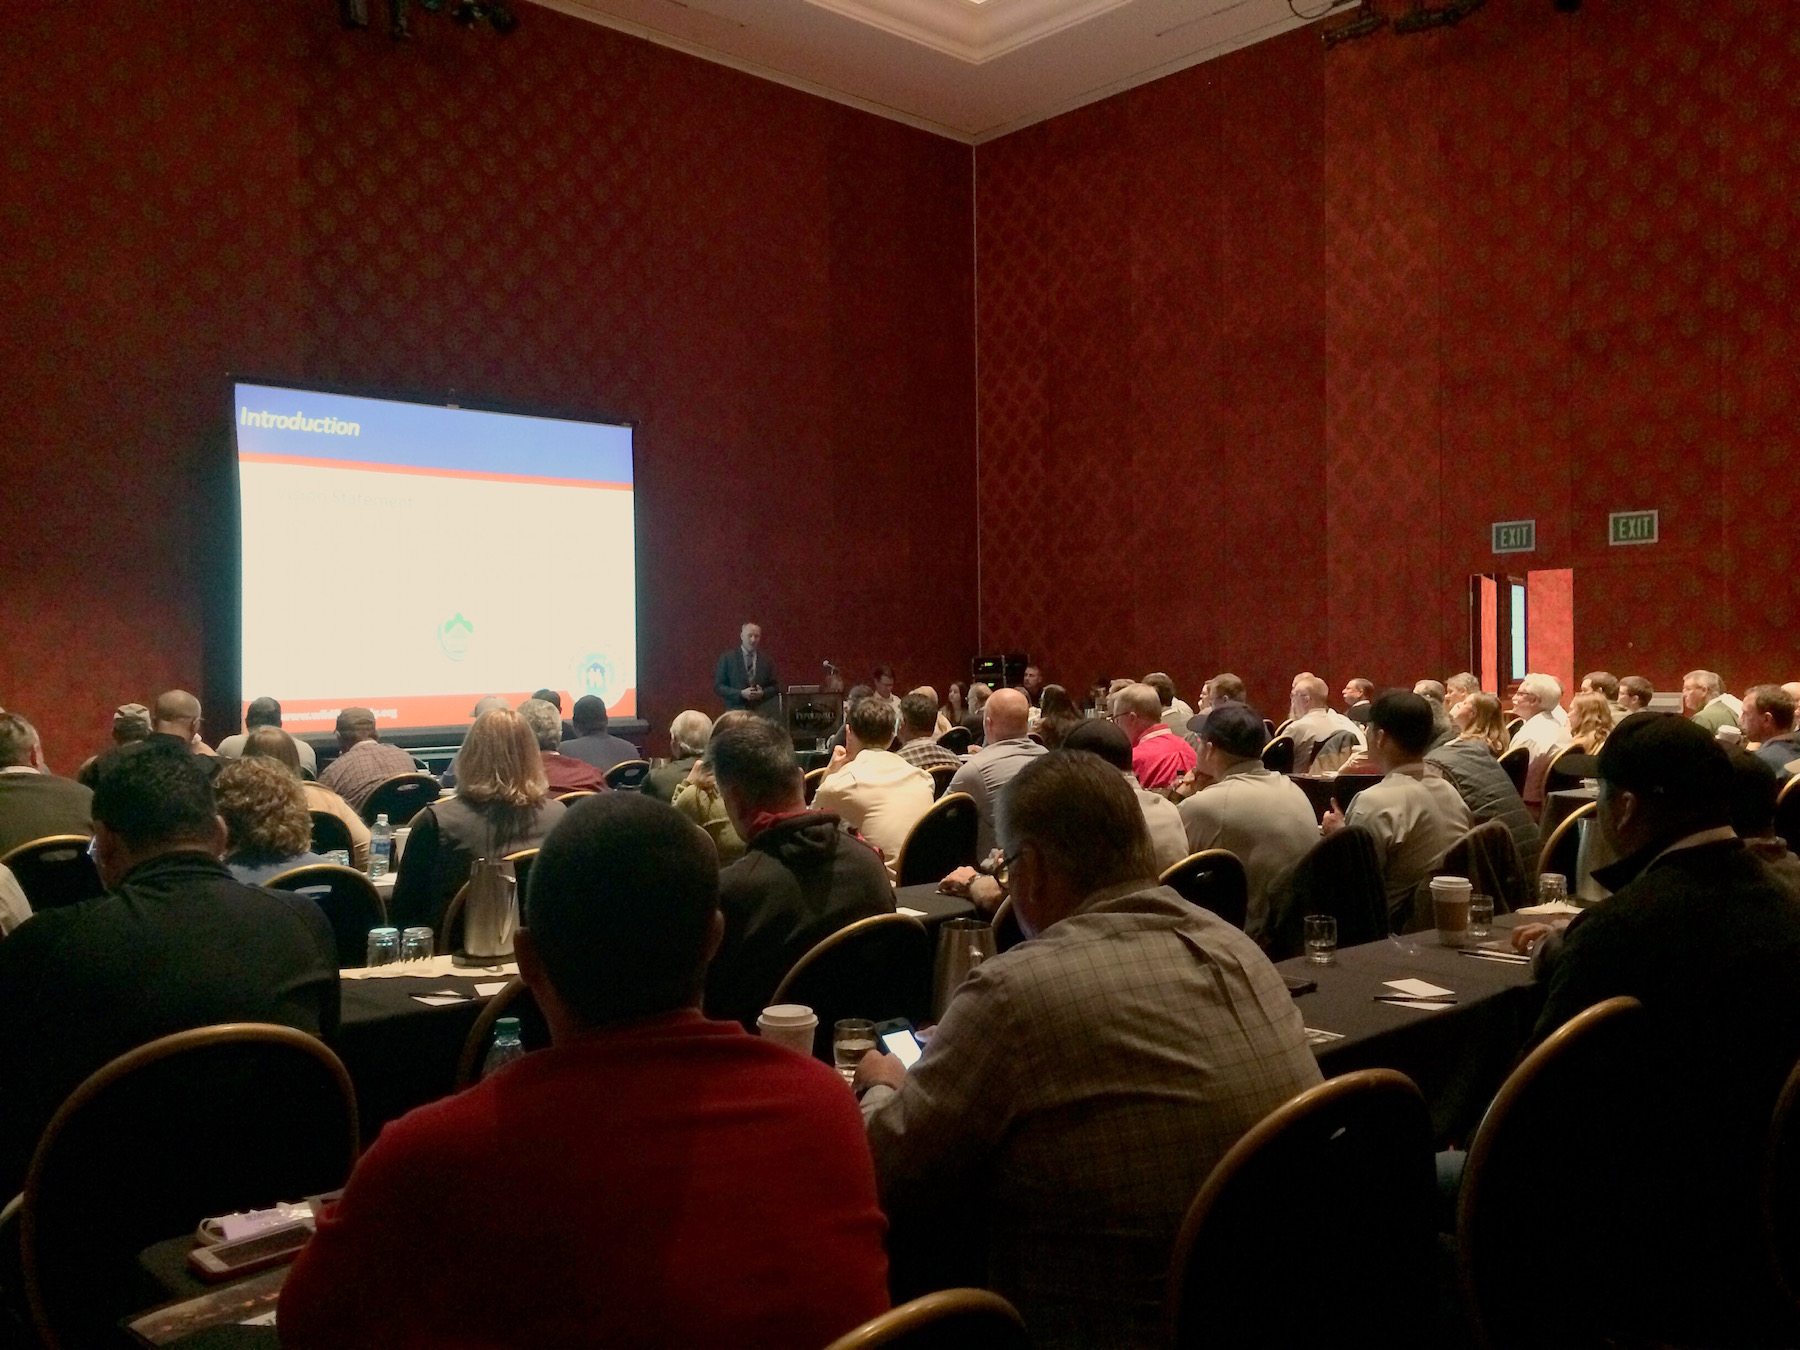 Conference talks ranged from a variety of topics - there was something for everyone this year.